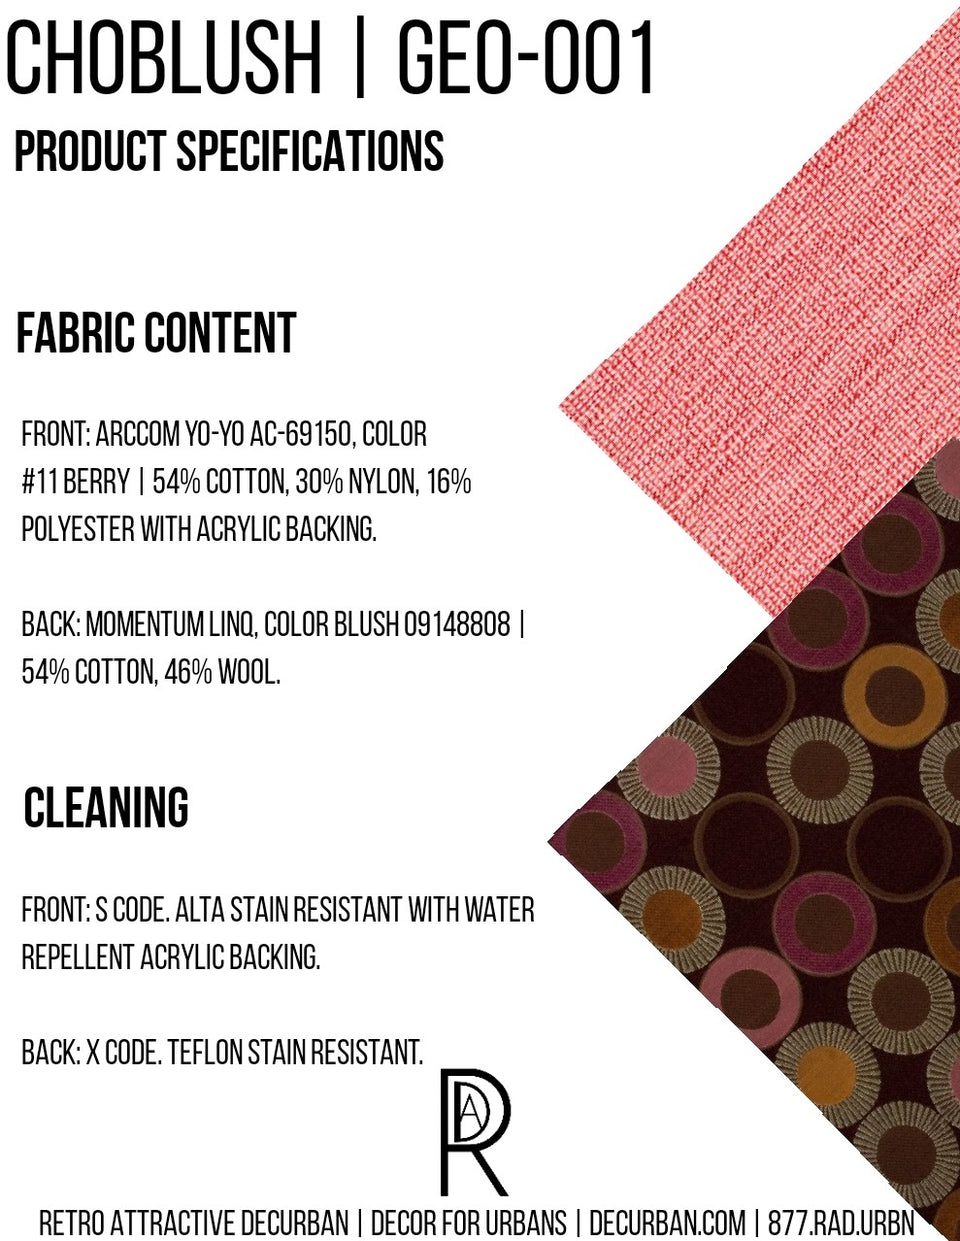 Decurban Choblush Fabric Specification Sheet